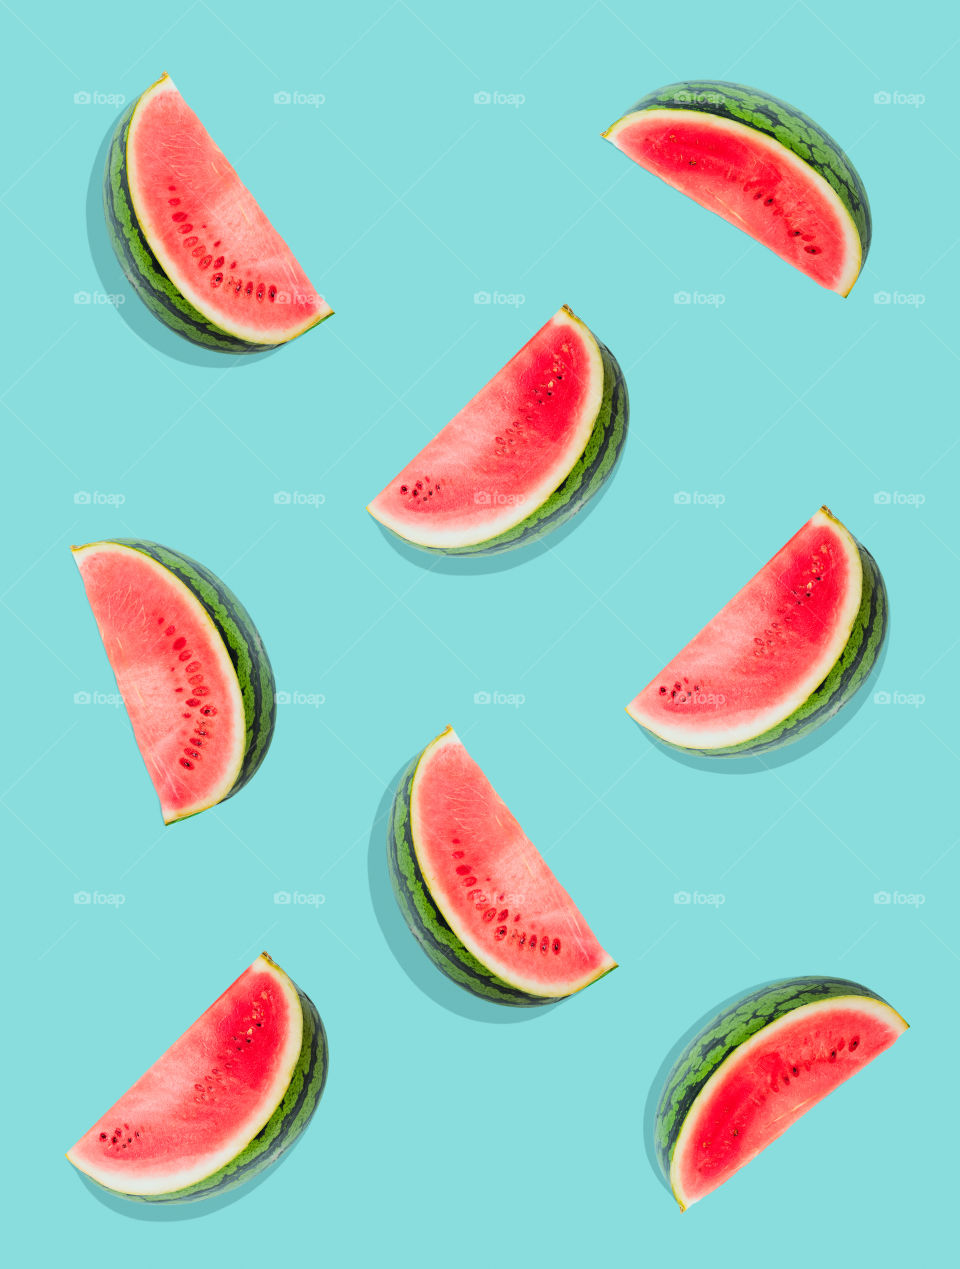 Watermelon pattern. Slices of watermelon on a plain surface painted in bright blue